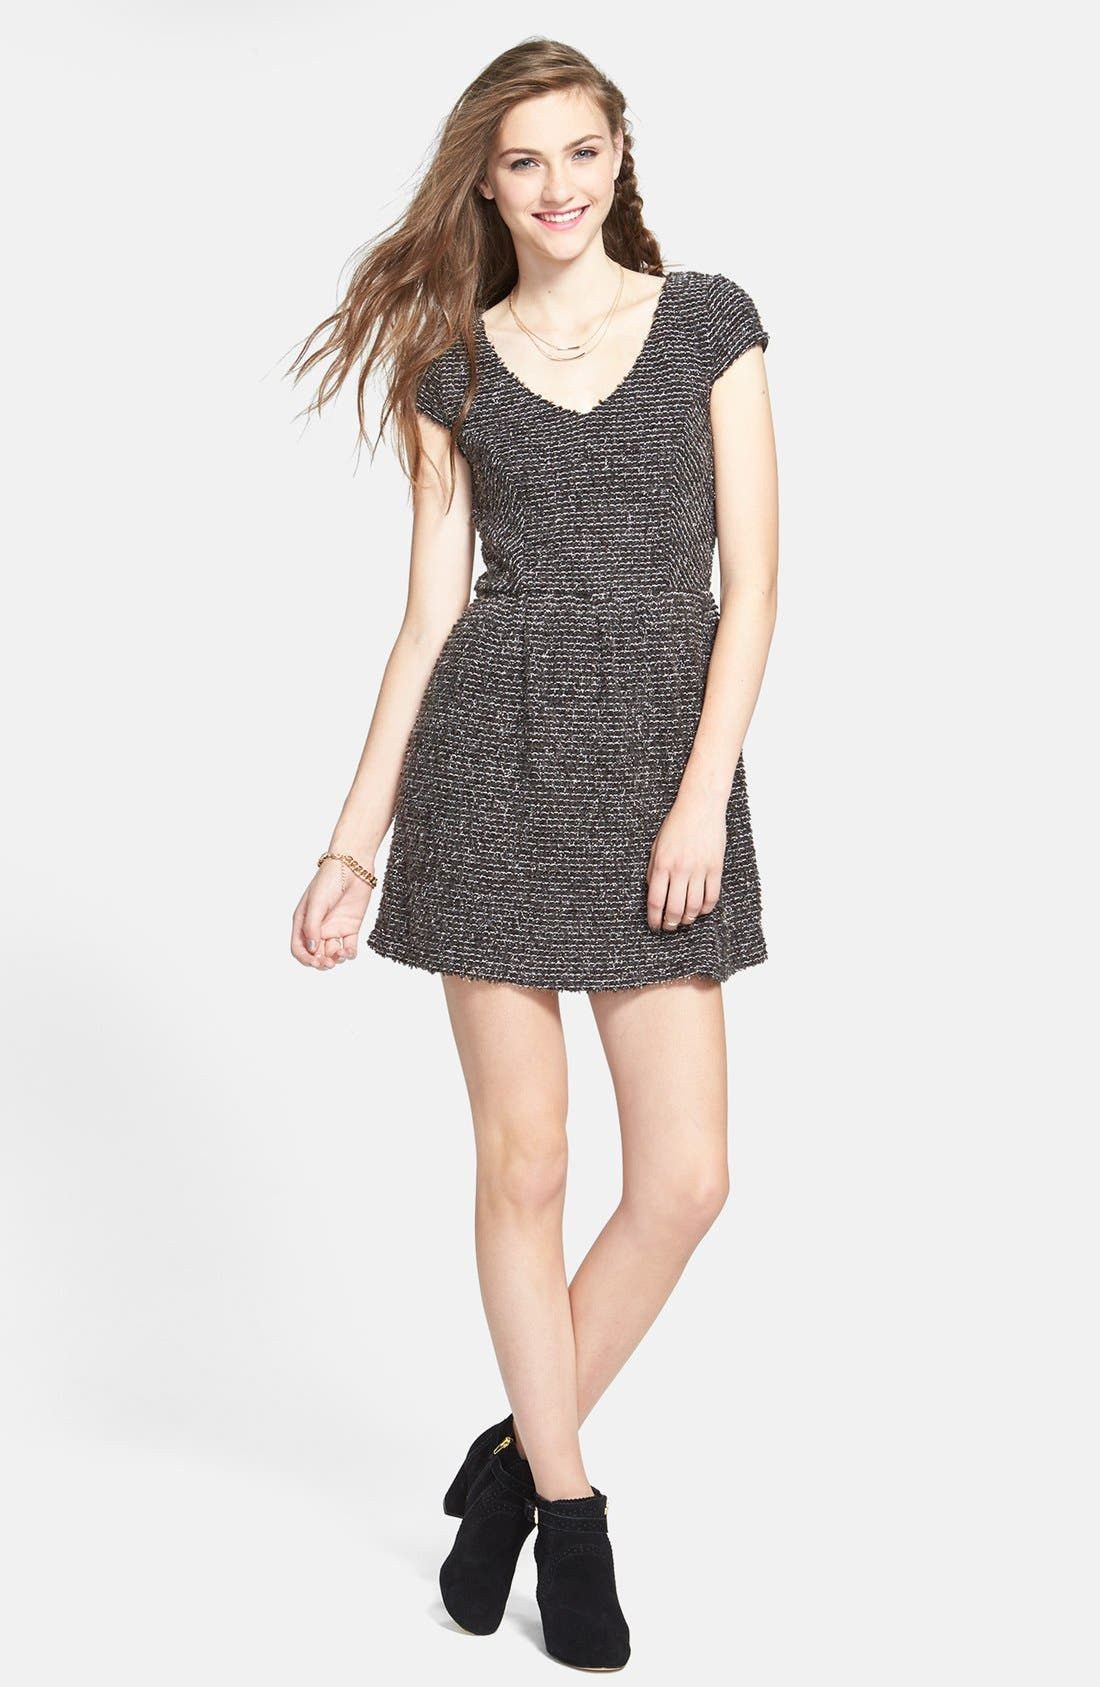 Alternate Image 1 Selected - Socialite Textured Skater Dress (Juniors)